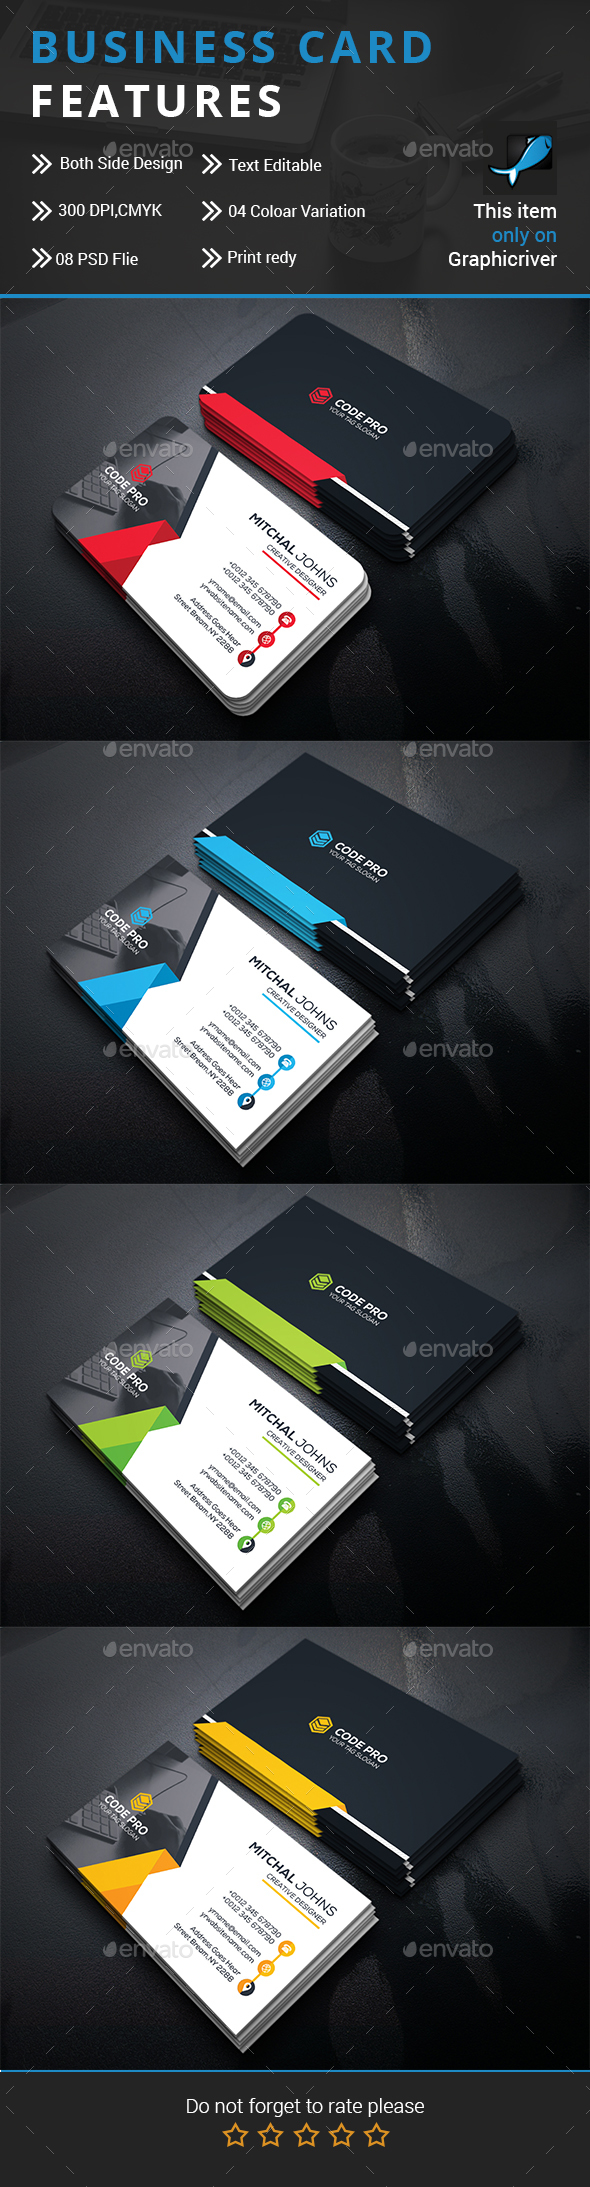 Business Card Template PSD Download Here Httpsgraphicriver - Buy business card template